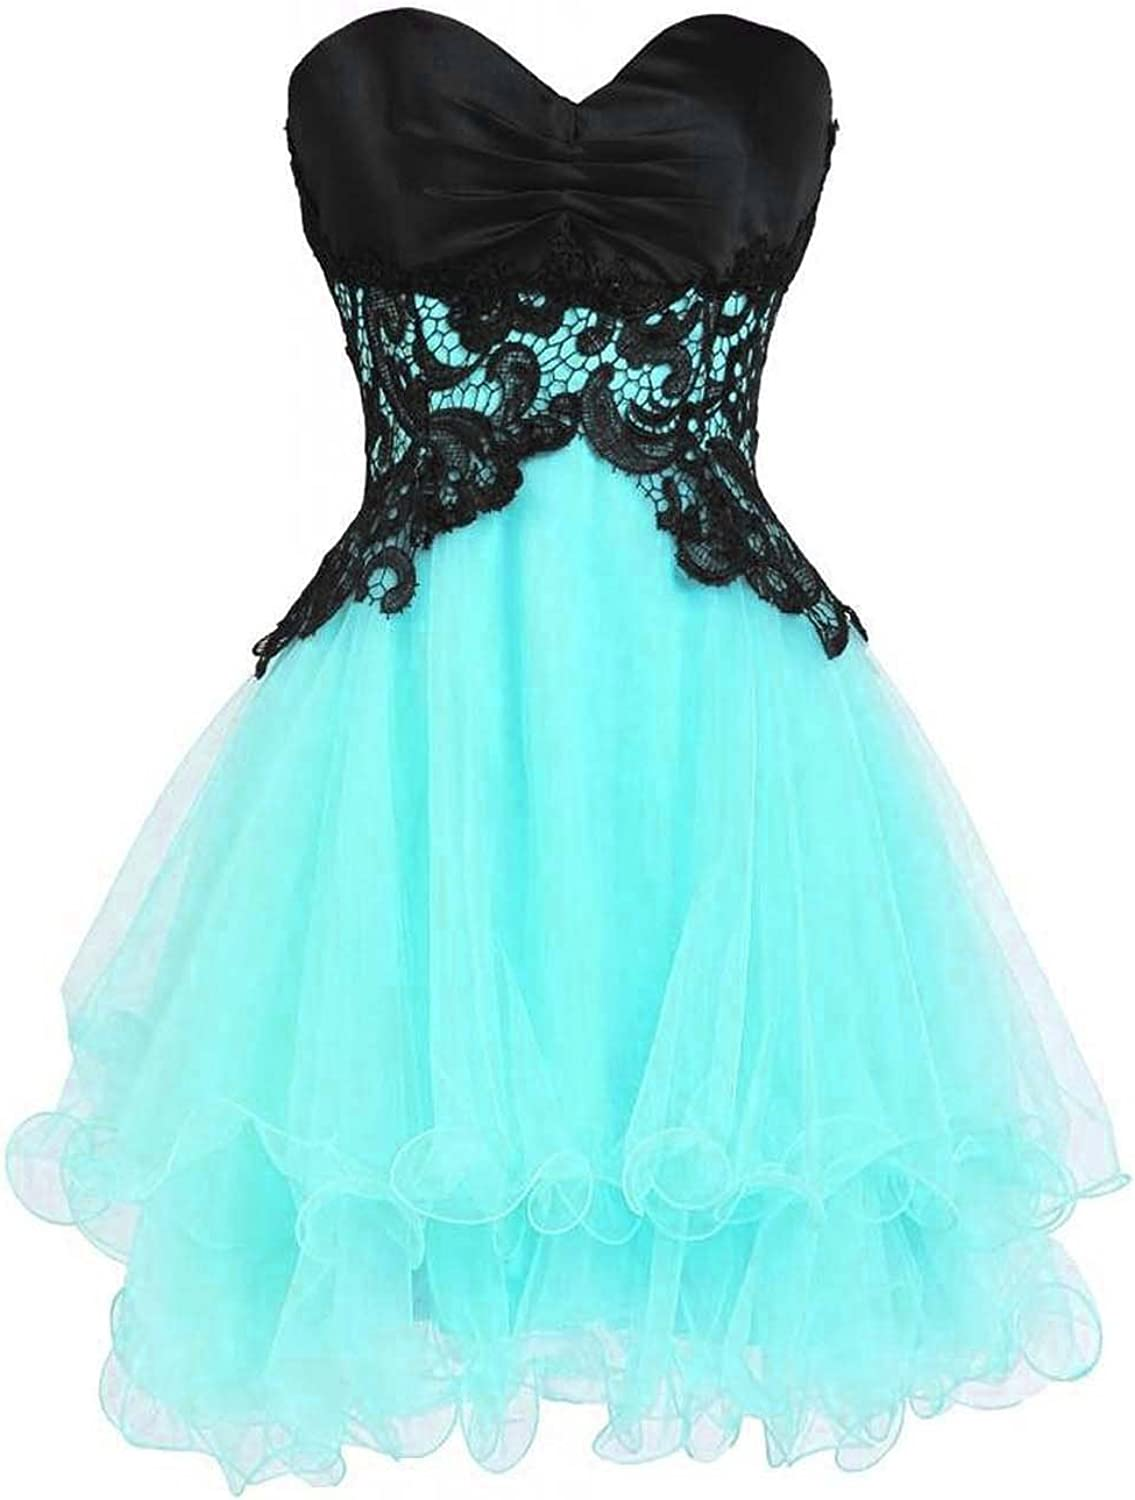 Bonnie clothing Women's Short Cute Lace and Tulle Lace Up Sleeveless Party Prom Dress